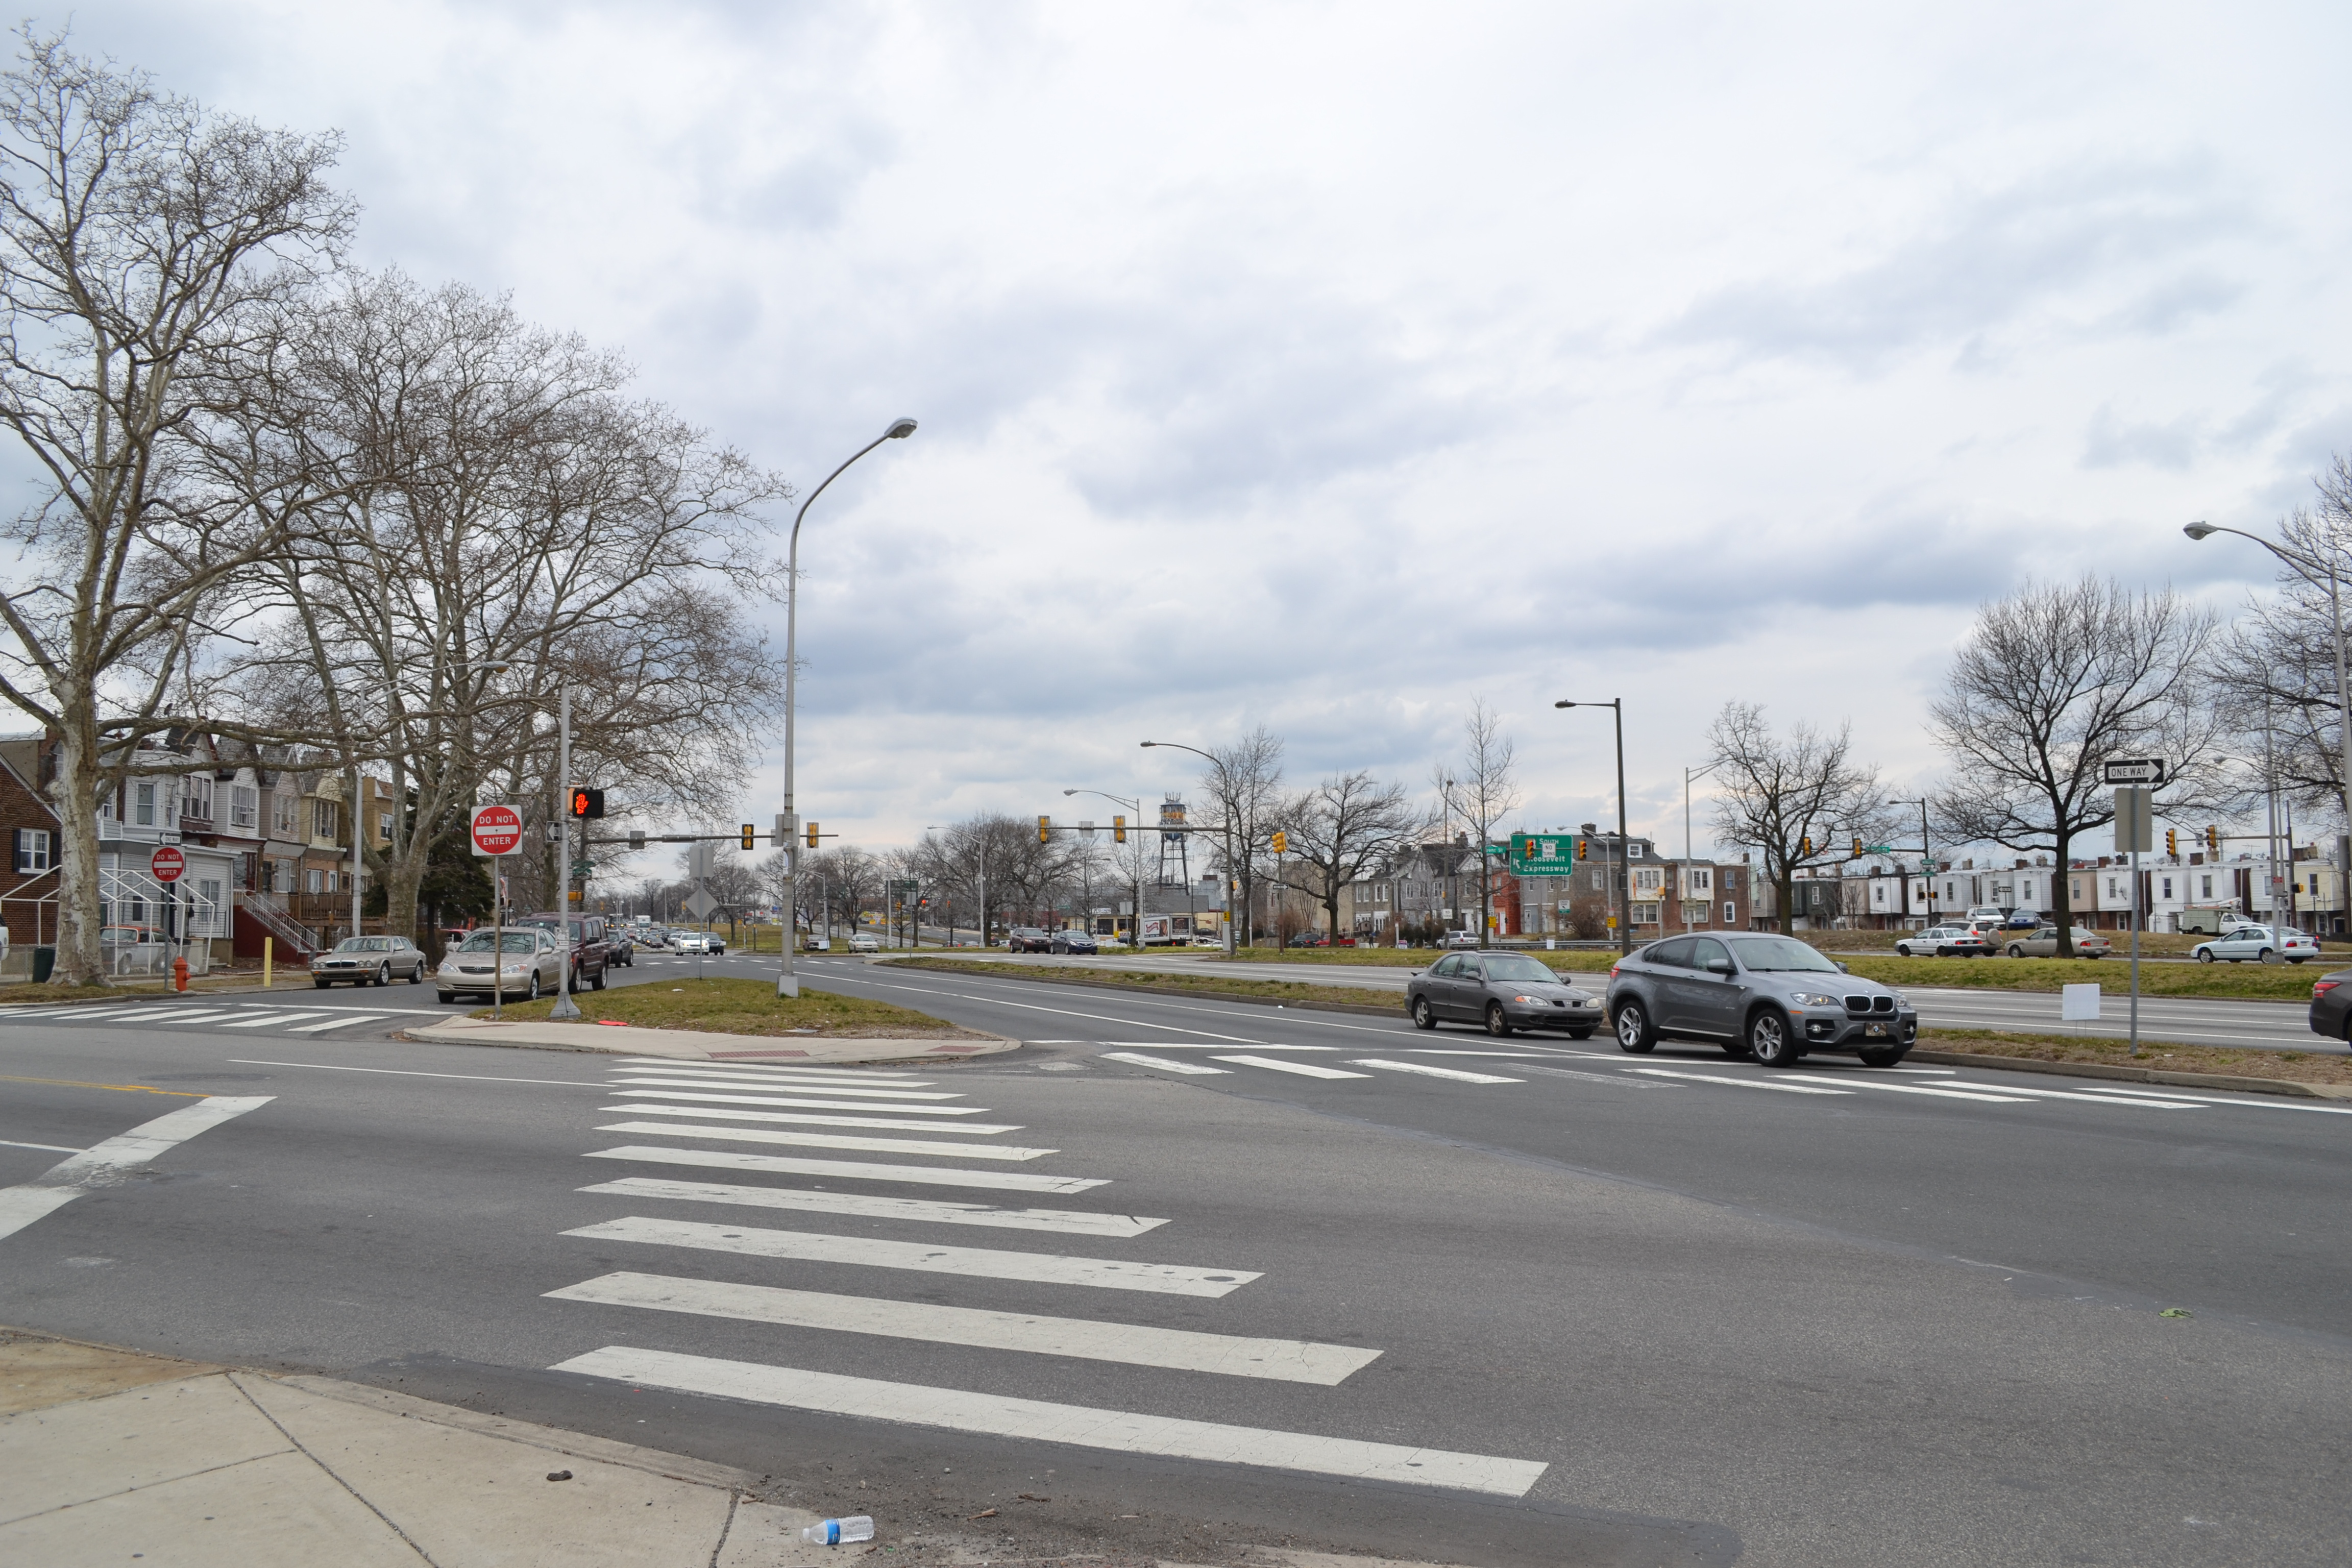 Roosevelt Boulevard's width makes it difficult to cross on foot